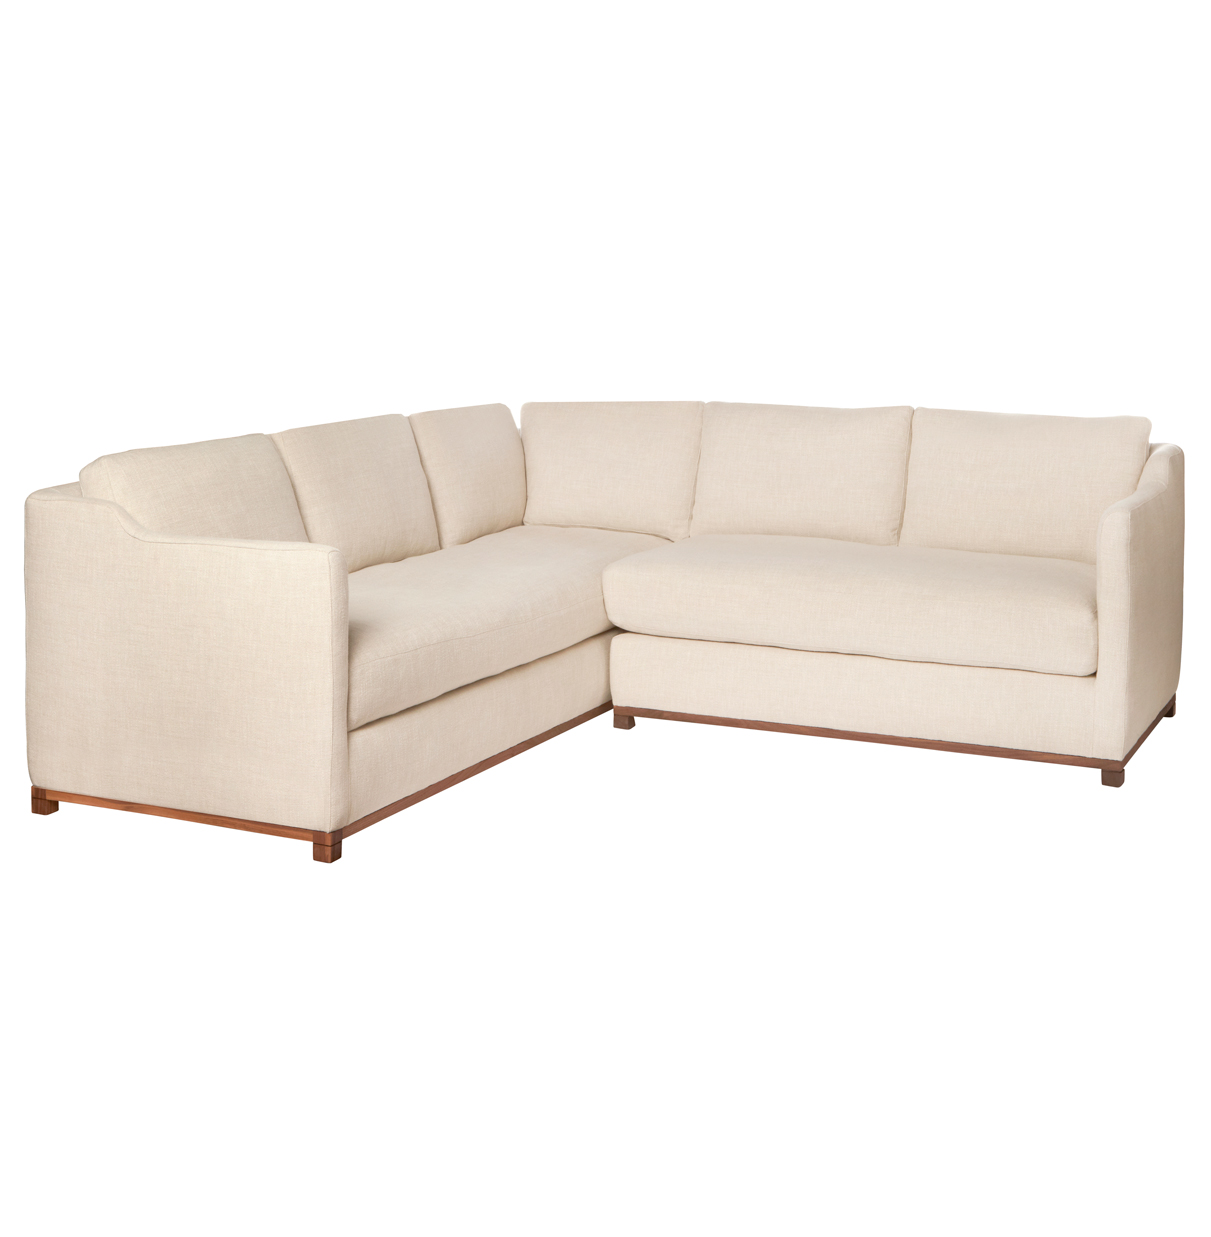 Kardell Mid Century Modern Beige Linen Sectional - Right Arm Facing - 90x91